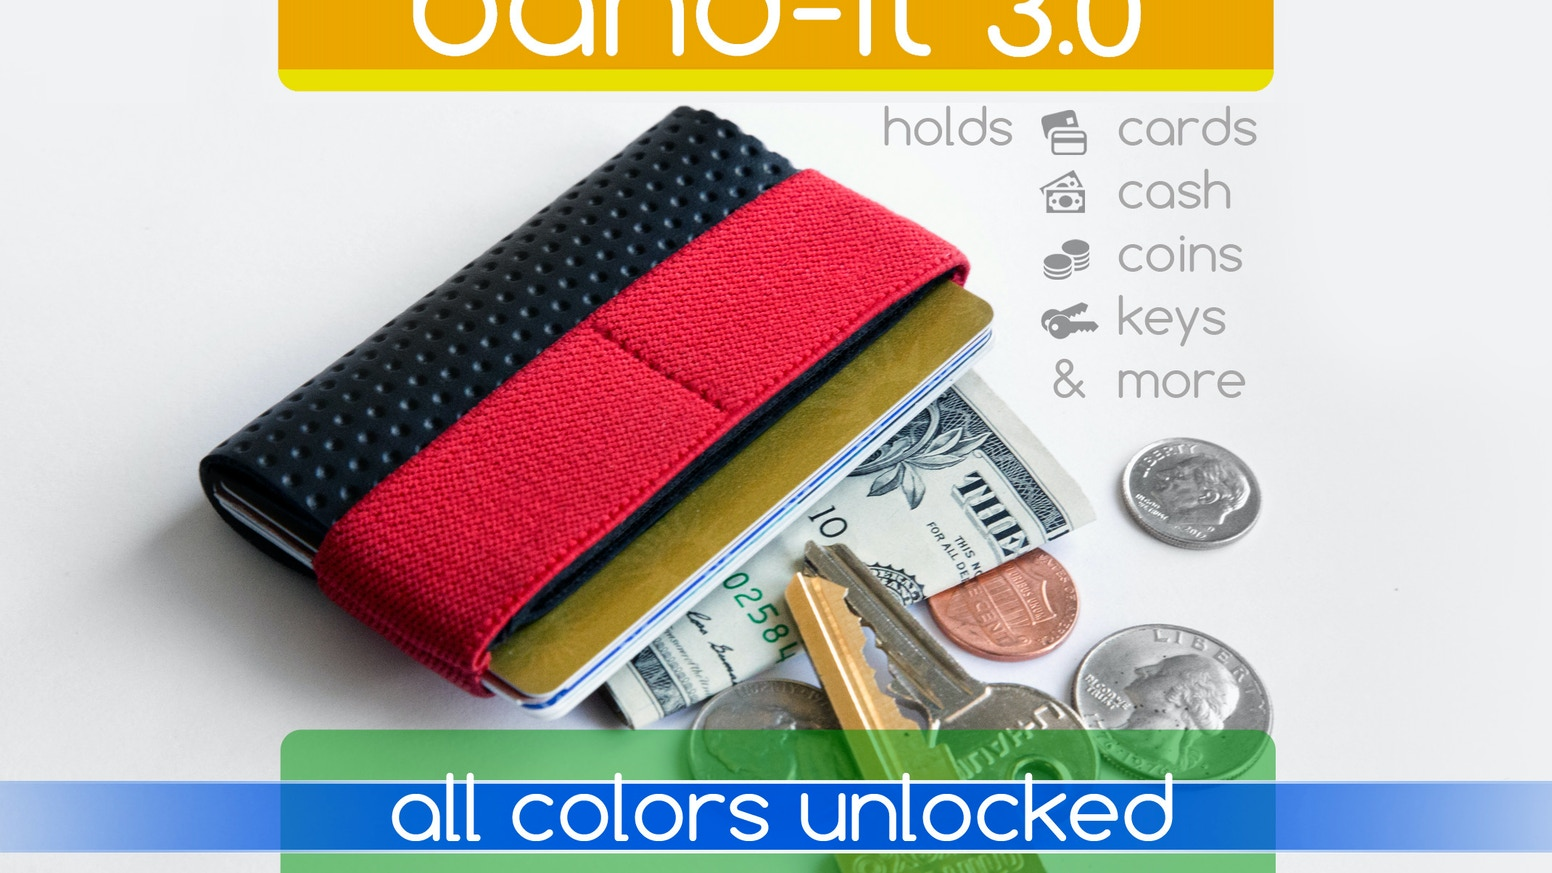 Seems too small for anything but holds everything you need.  Featuring a new stealth pocket for coins, keys and more!